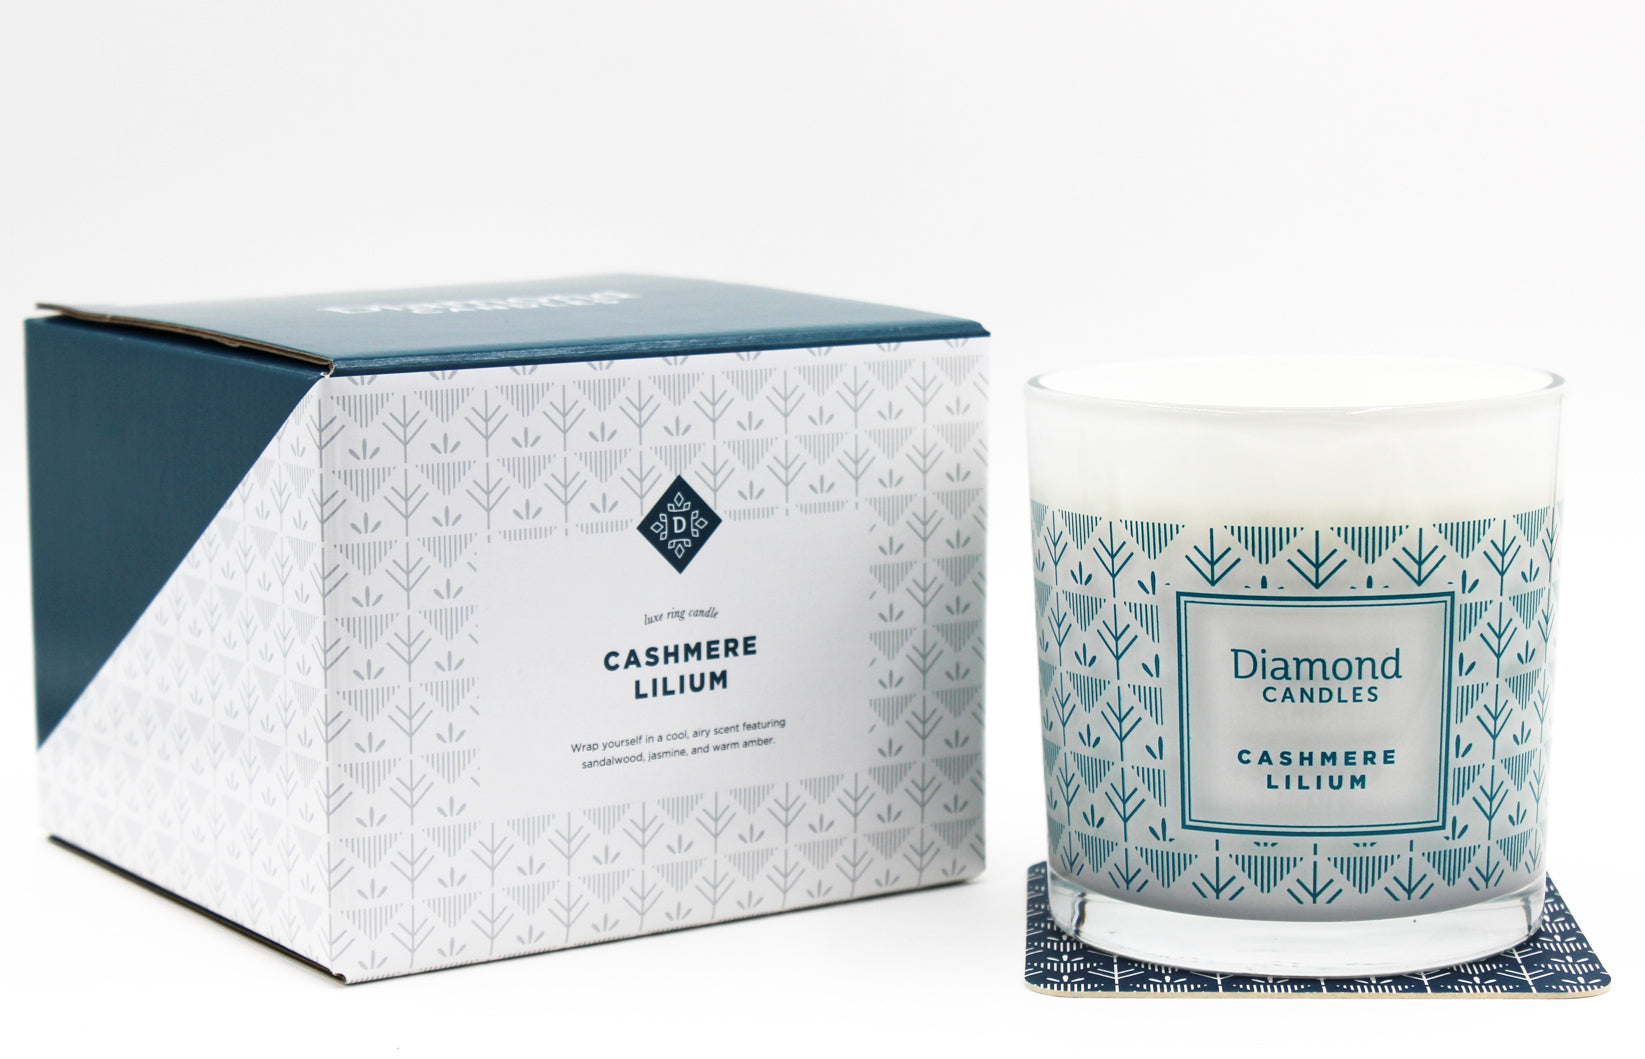 Standard Cashmere Lilium Luxe Ring Candle